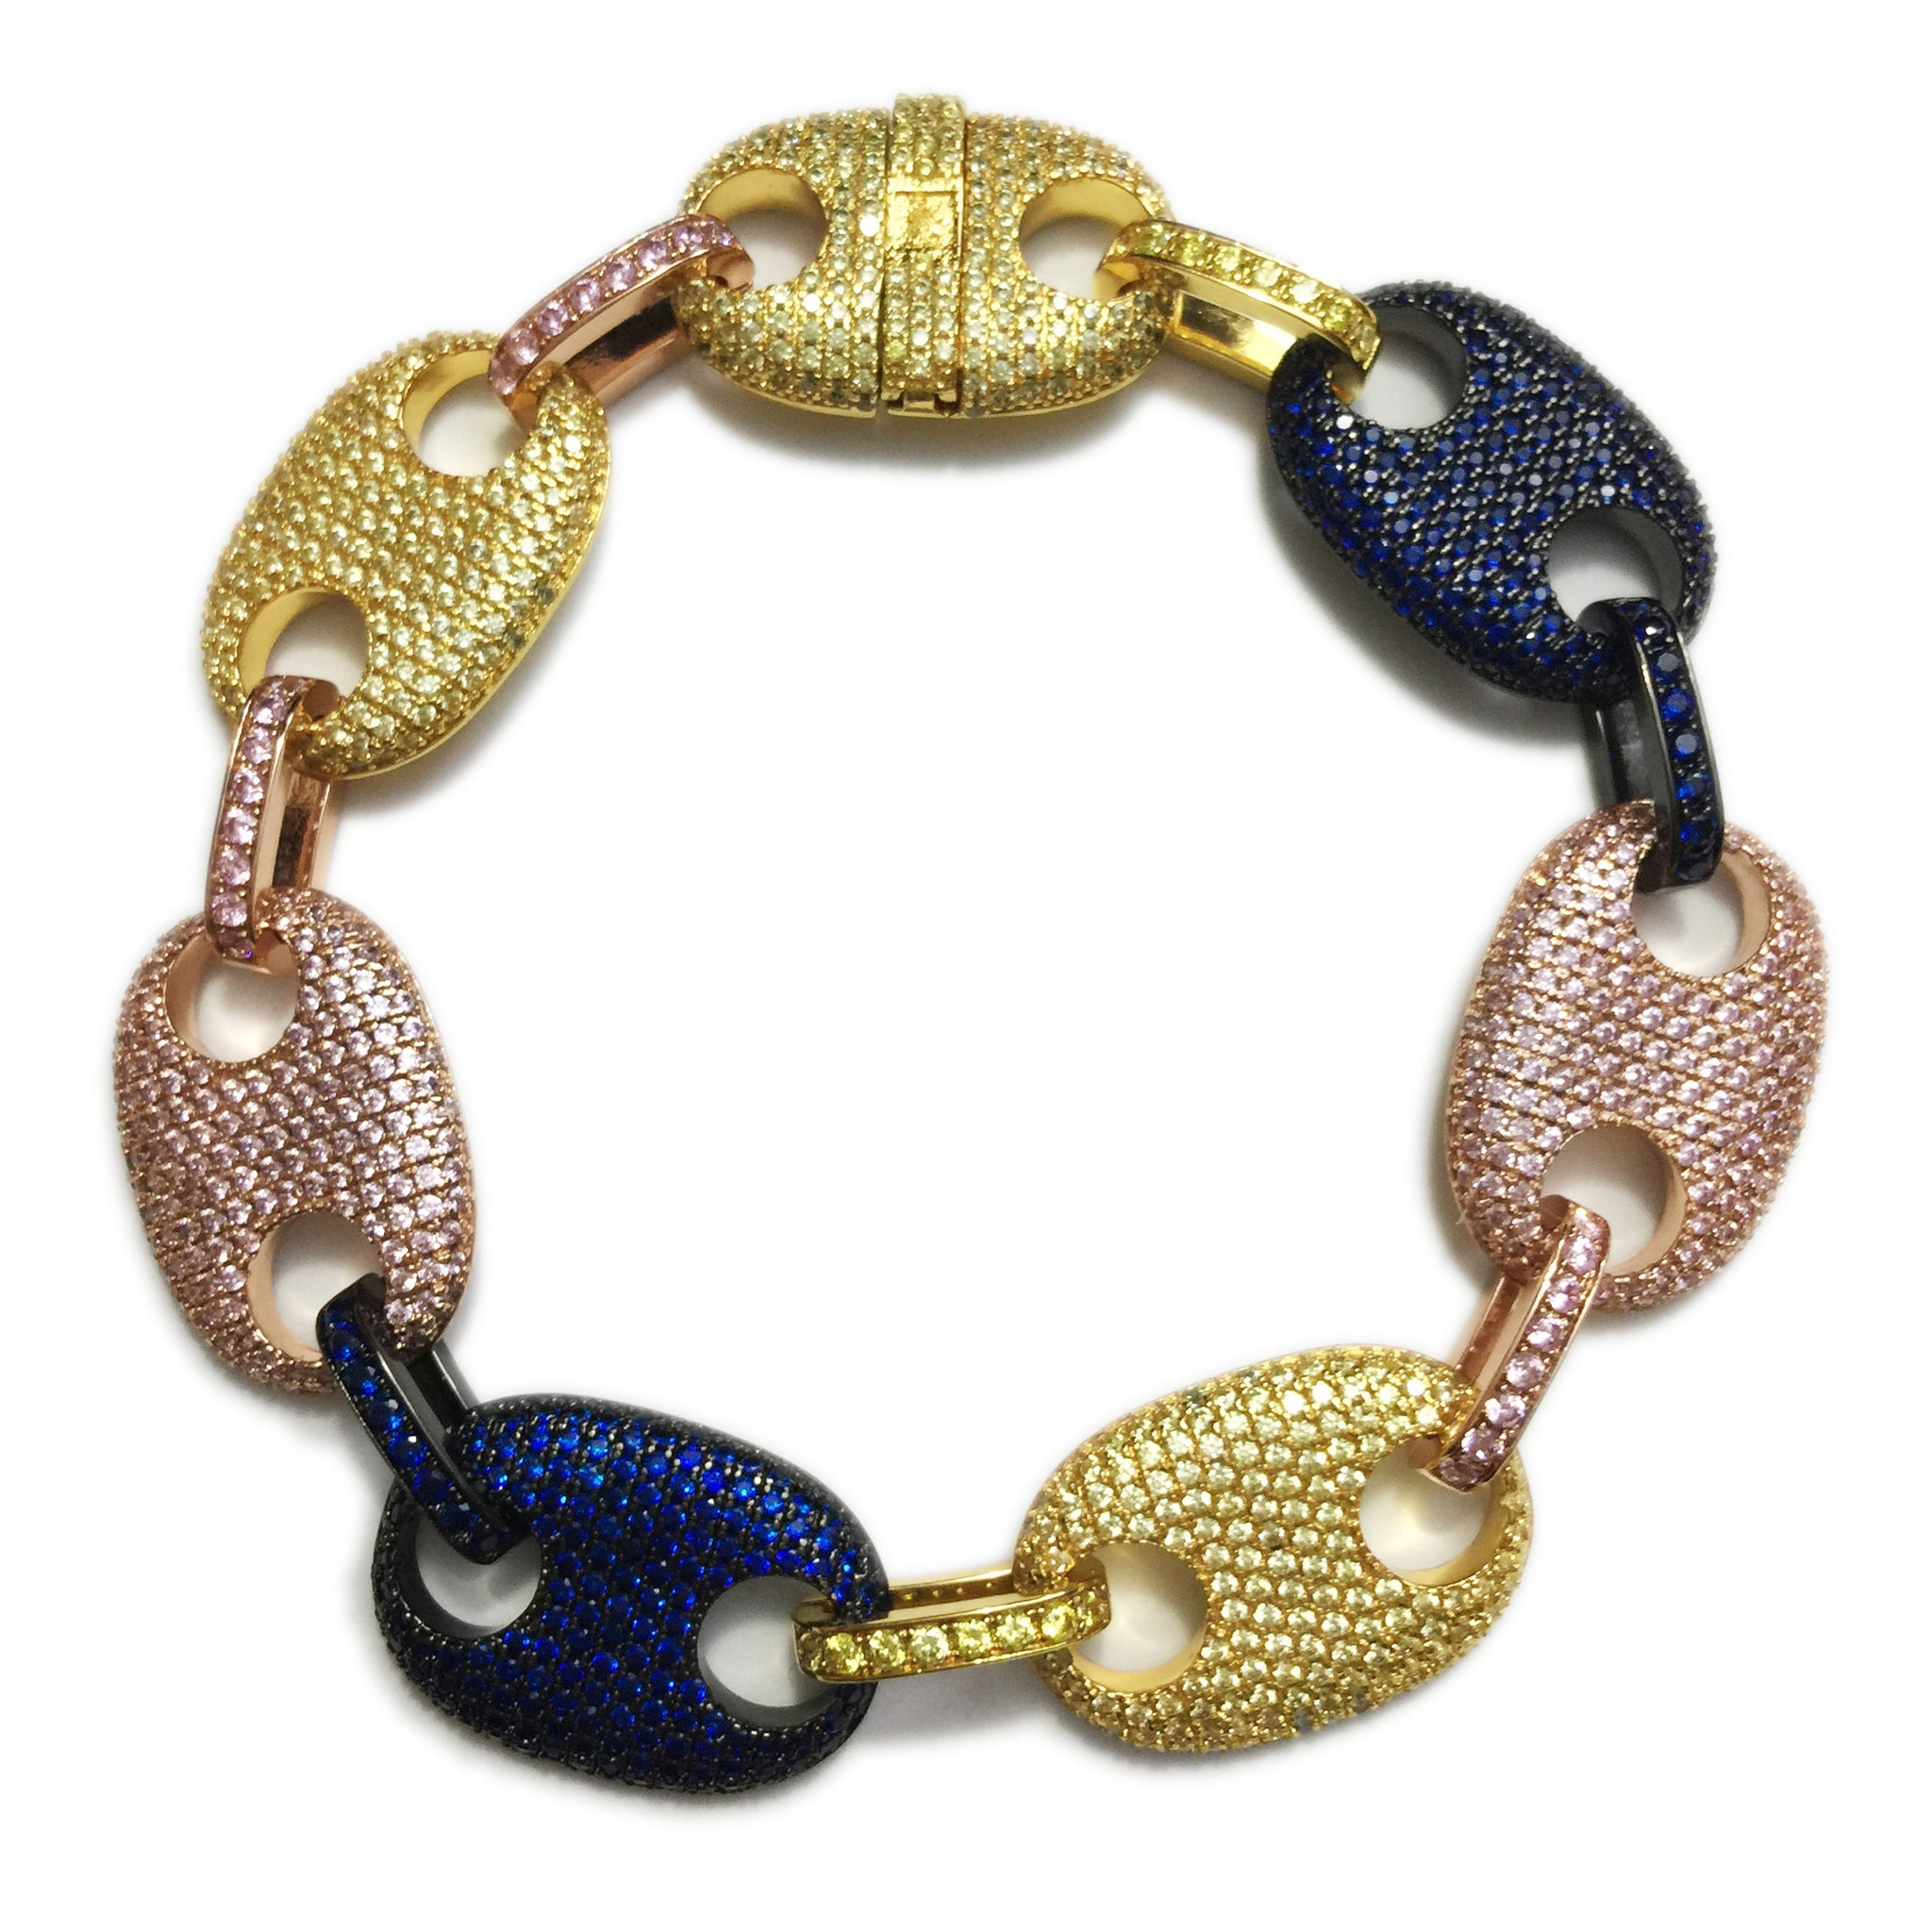 Iced out gucci link mariner link bracelet 18mm Multi-colored